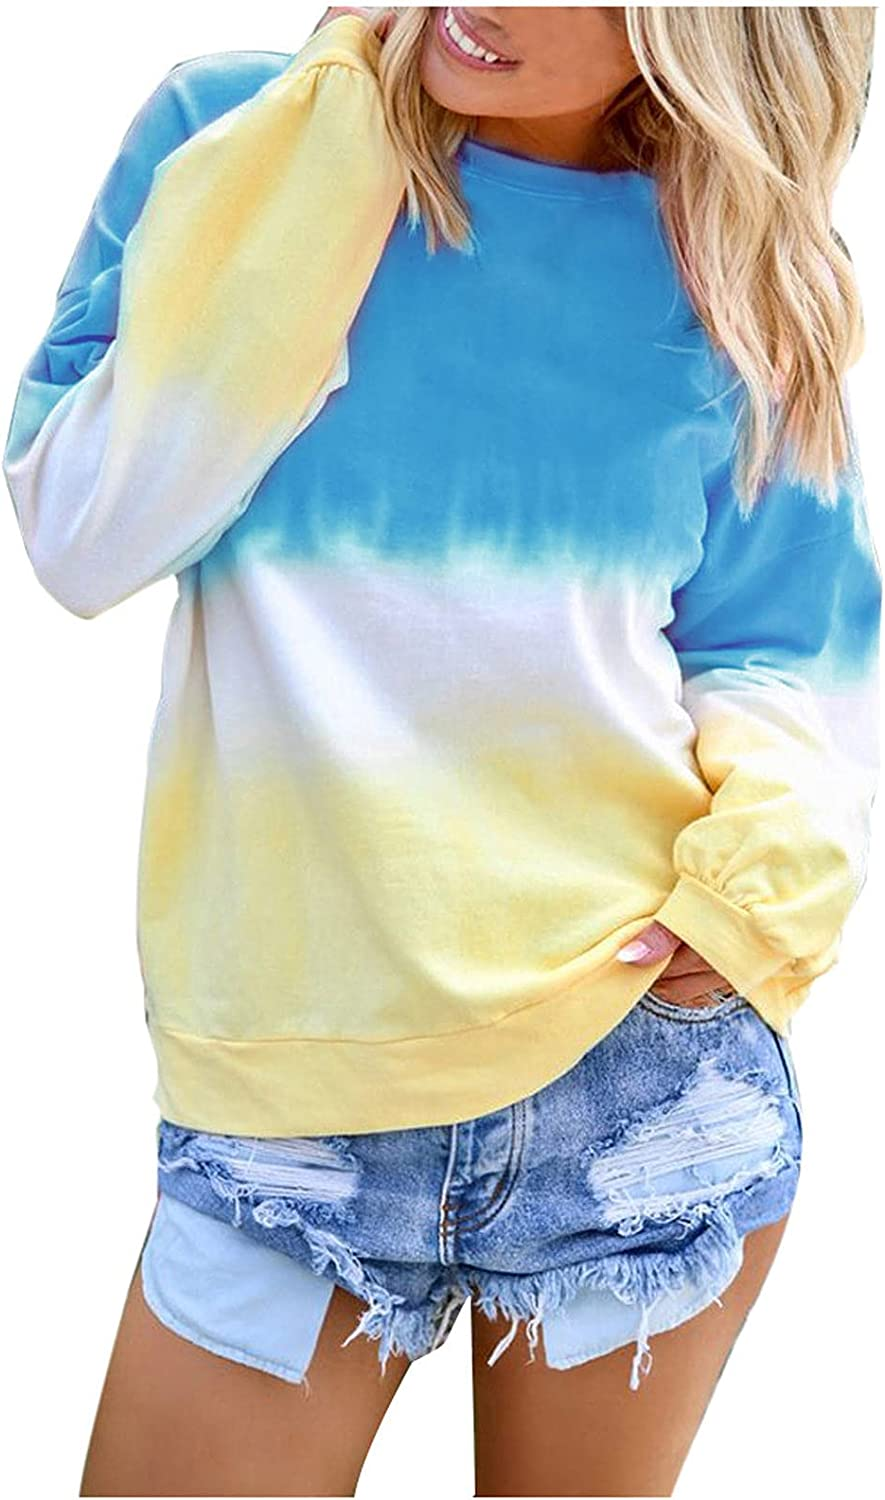 Fashion Womens Hoodies Pullover Casual Gradient Printed Blouses Tees O-Neck Long Sleeve T-Shirts Tops